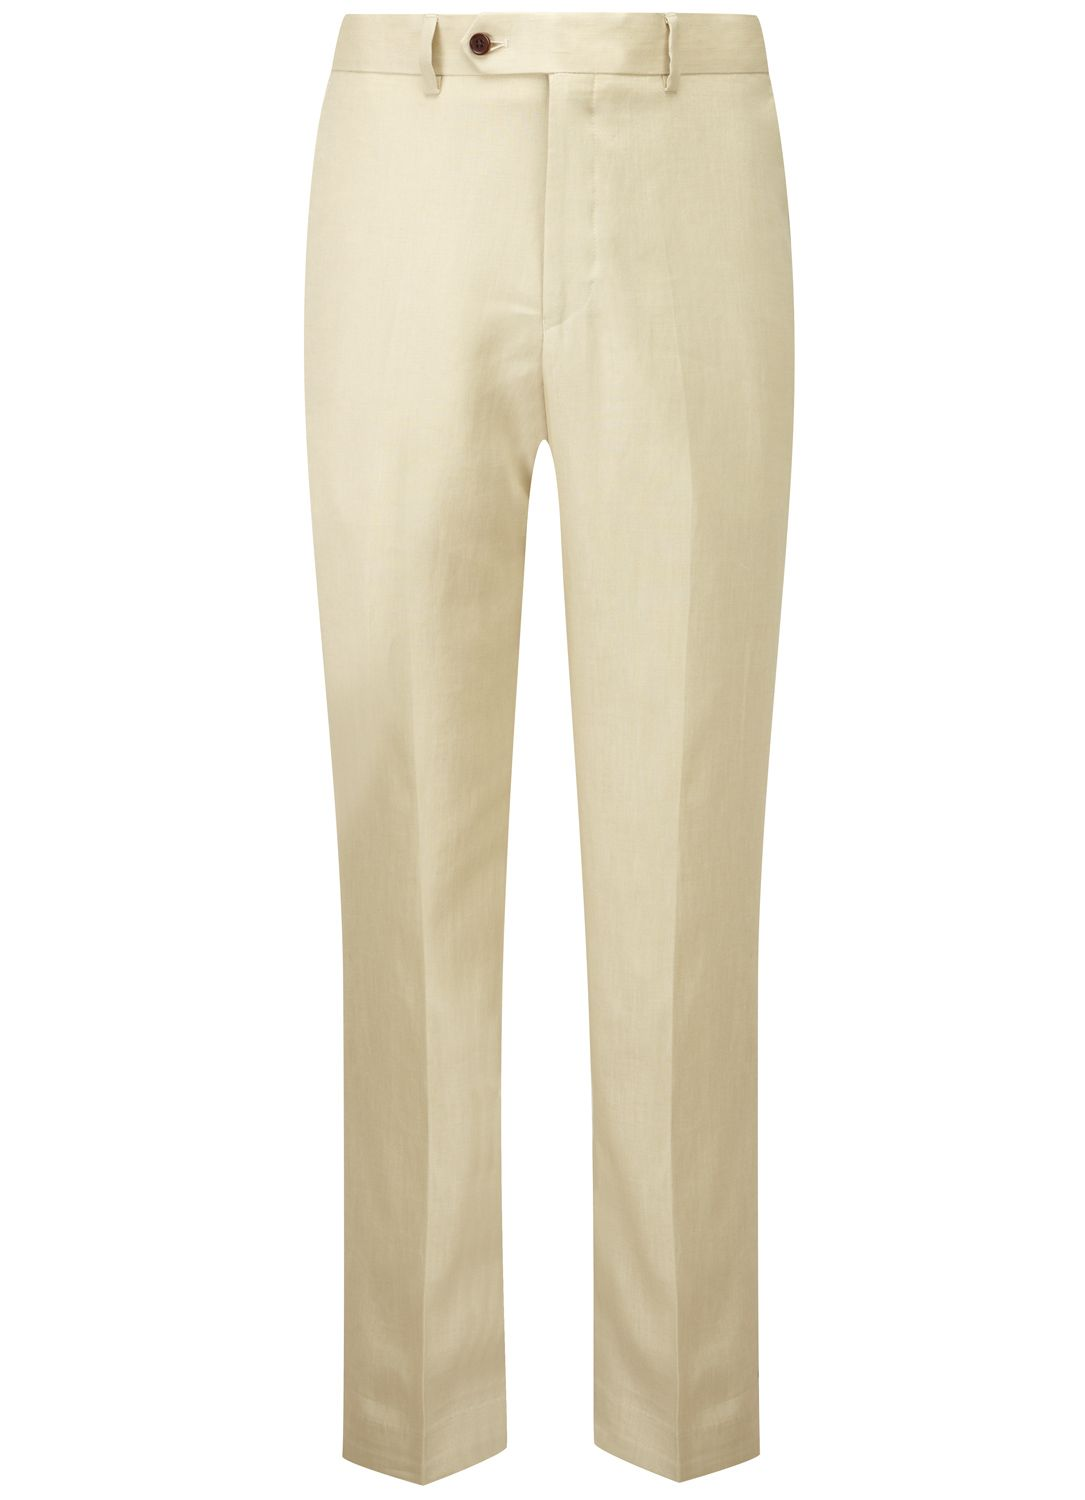 Contemporary Fit Sand Linen Trousers Formal Trousers Austin Reed Linen Trousers Trousers Mens Pants